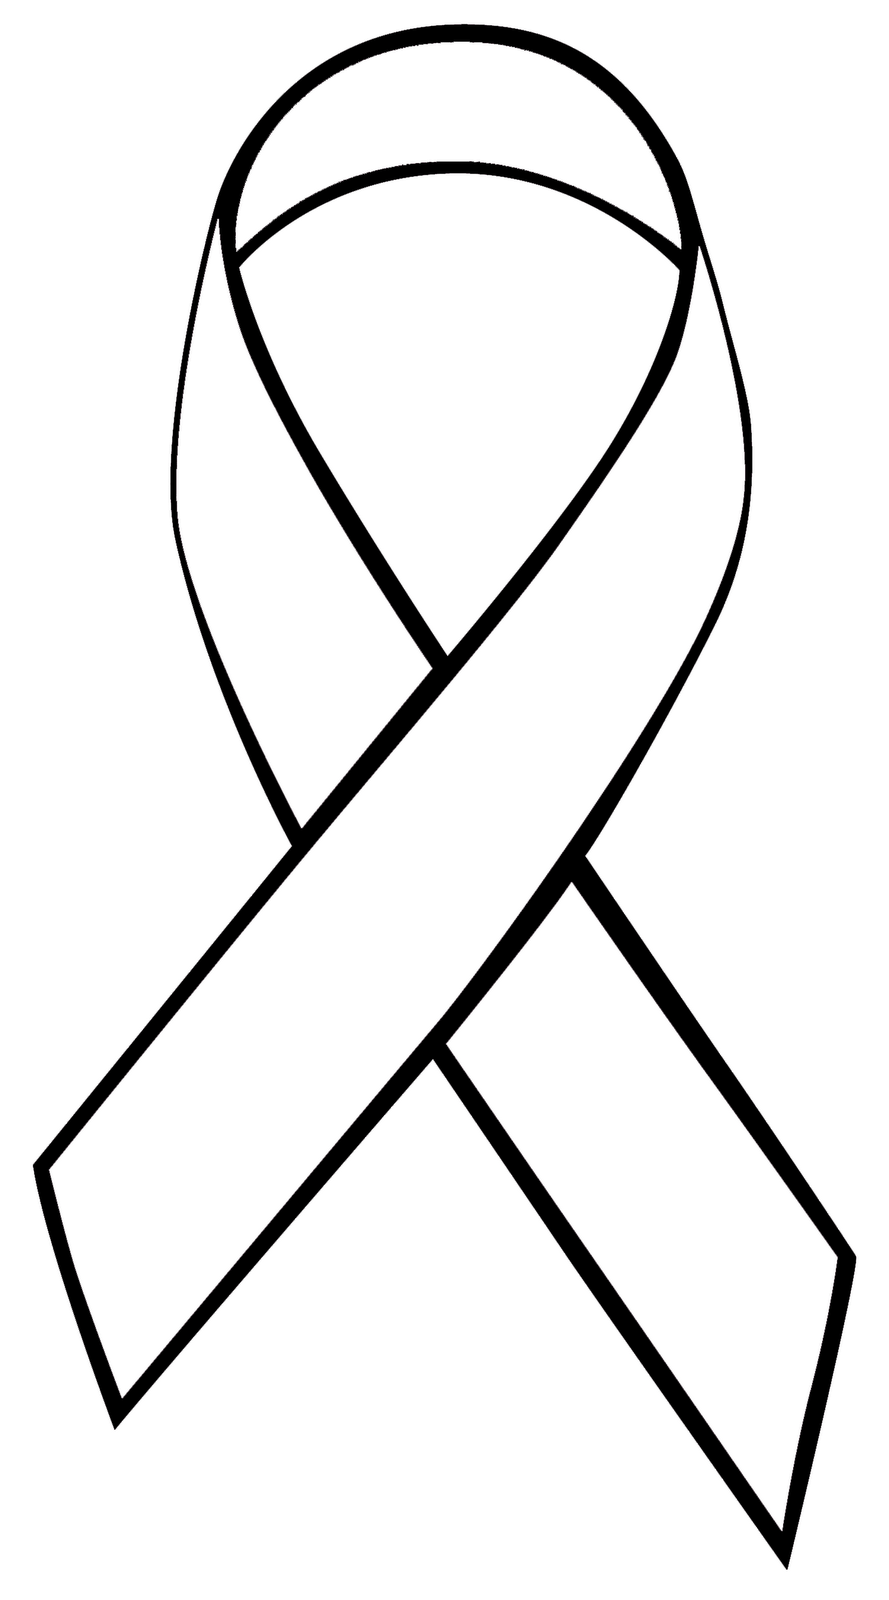 Cancer clipart causes cancer. Cutting files for you